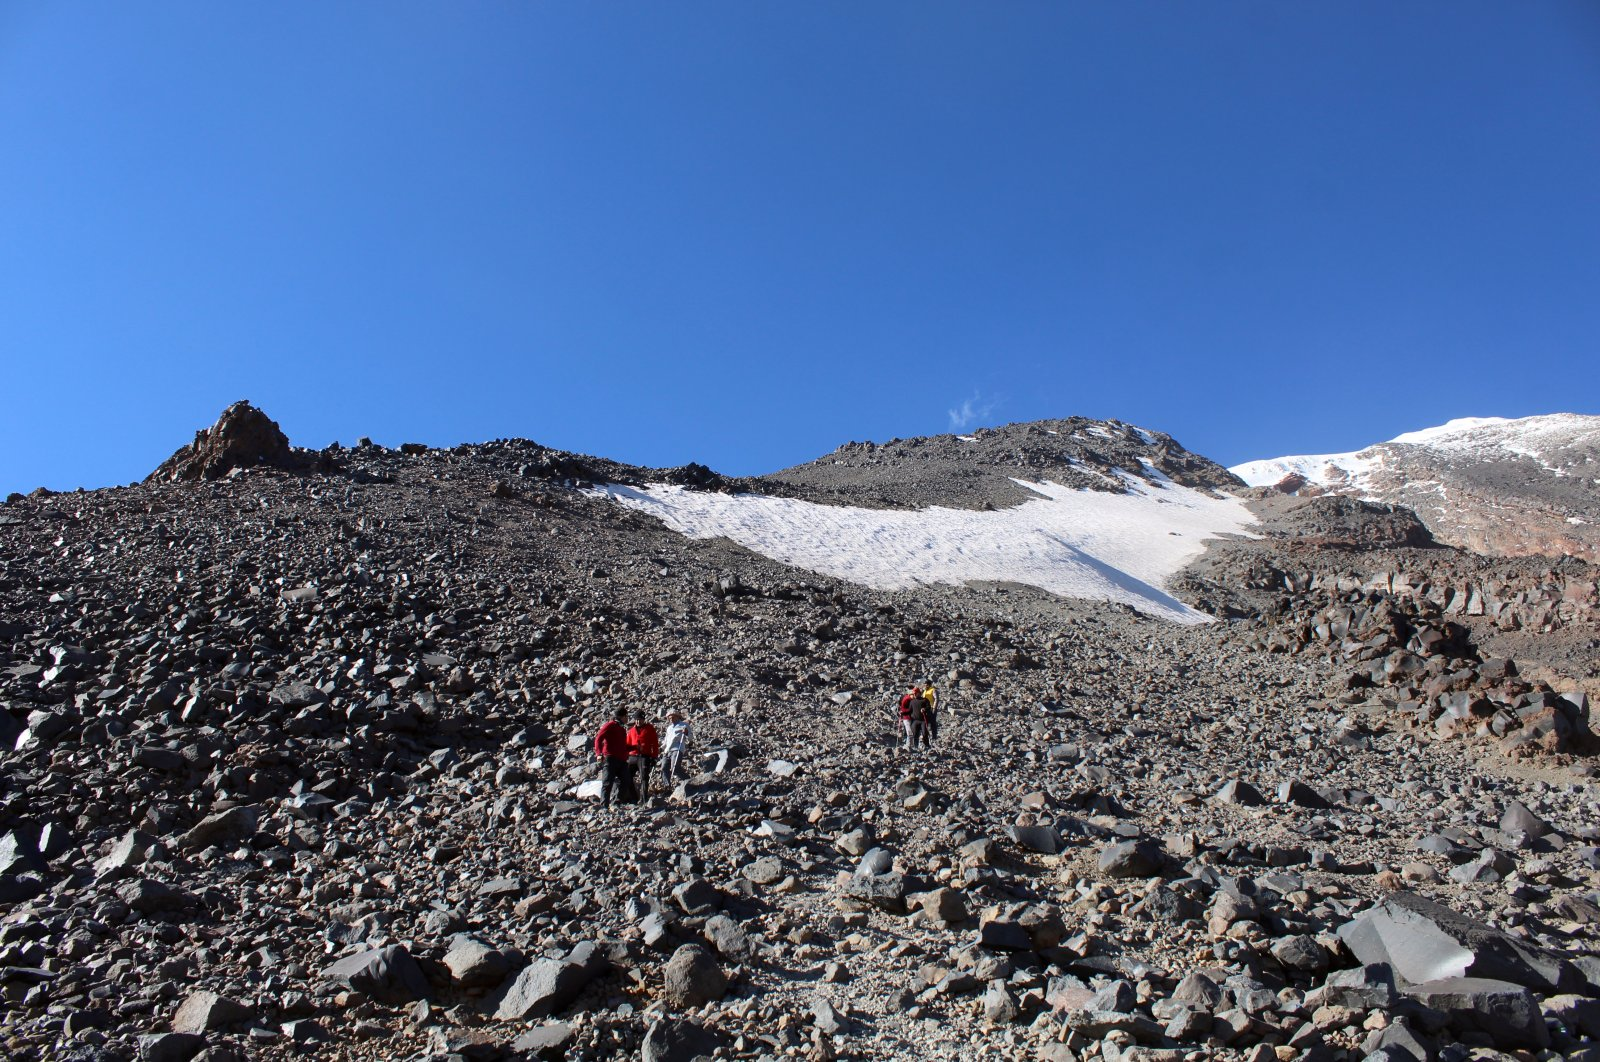 A view of the shrinking glacier at Mount Ağrı, in Ağrı, eastern Turkey, Aug. 24, 2021. (AA Photo)